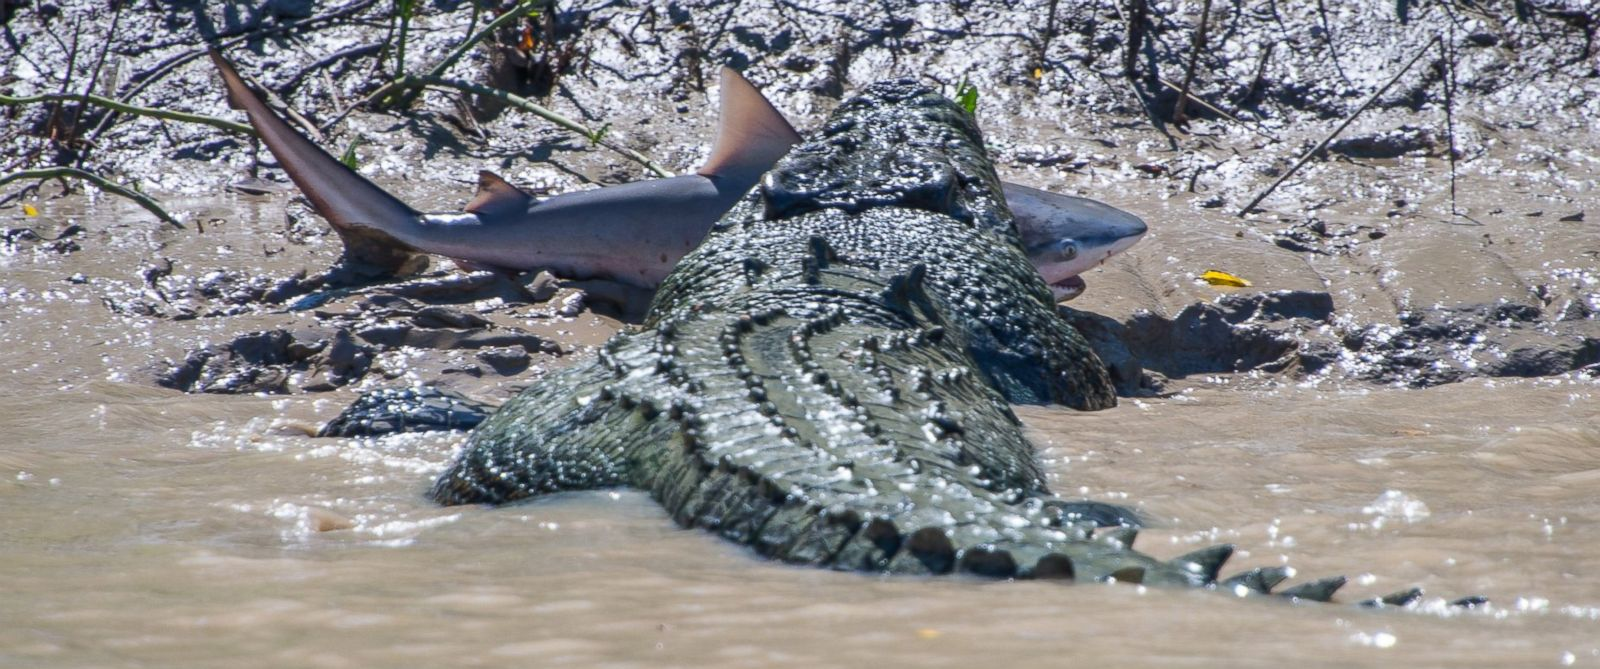 """PHOTO: Andrew Paice of Sydney, Australia photographed a crocodile nicknamed """"Brutus"""" eating a live shark while on Adelaide River cruise on August 5, 2014."""